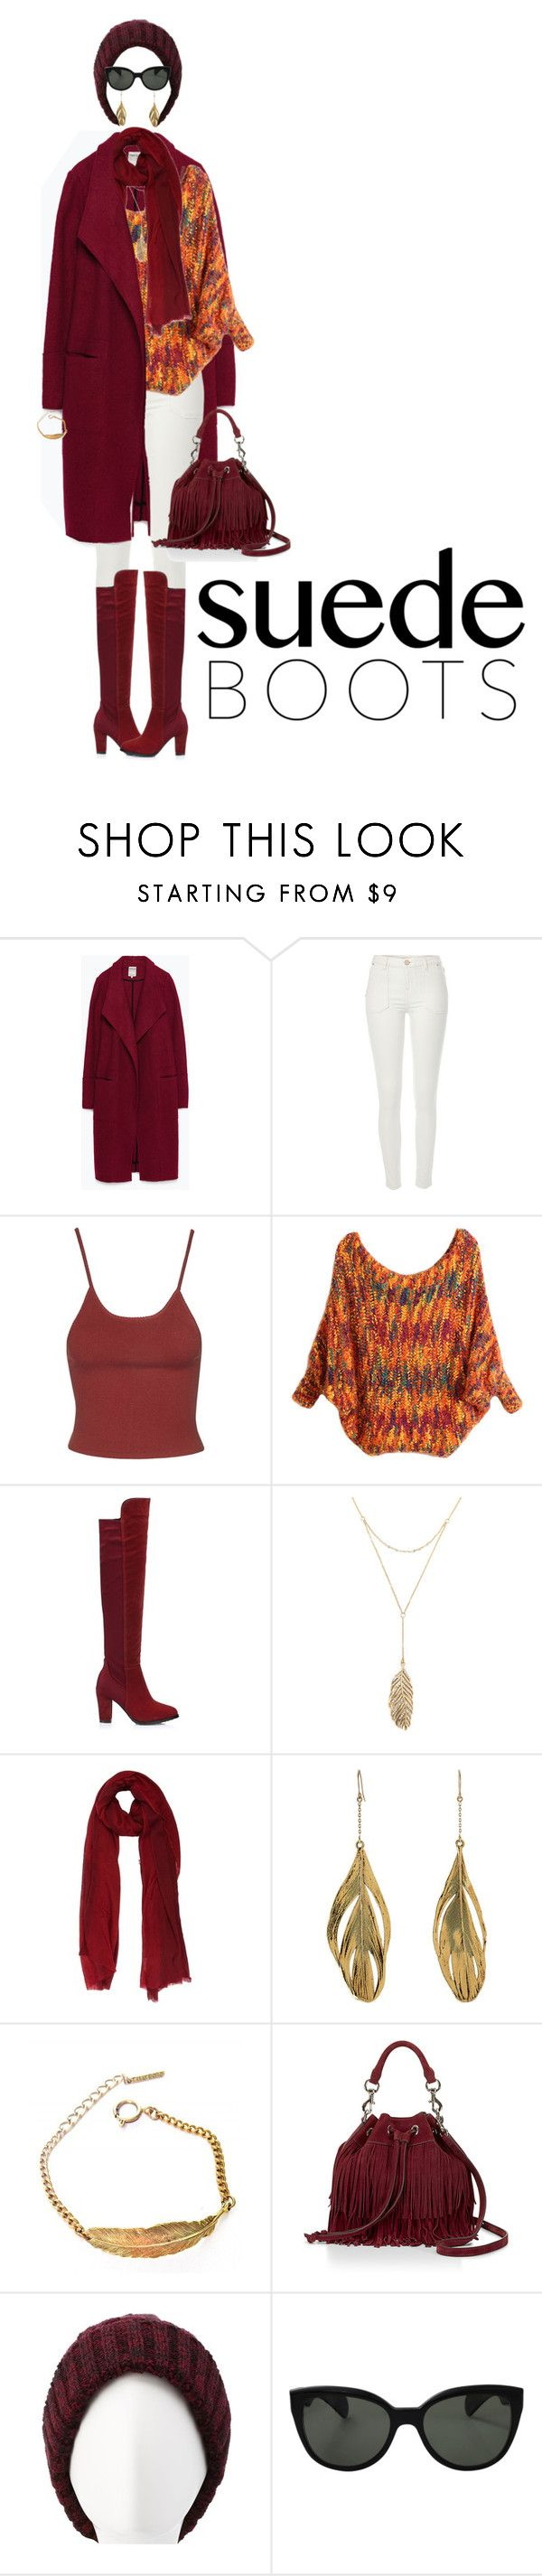 """""""Style Staple: Suede Boots"""" by ittie-kittie ❤ liked on Polyvore featuring Zara, River Island, Topshop, Rebecca Minkoff, Uma Wang, Aurélie Bidermann, Tilly Doro, Charlotte Russe, Oliver Peoples and suedeboots"""